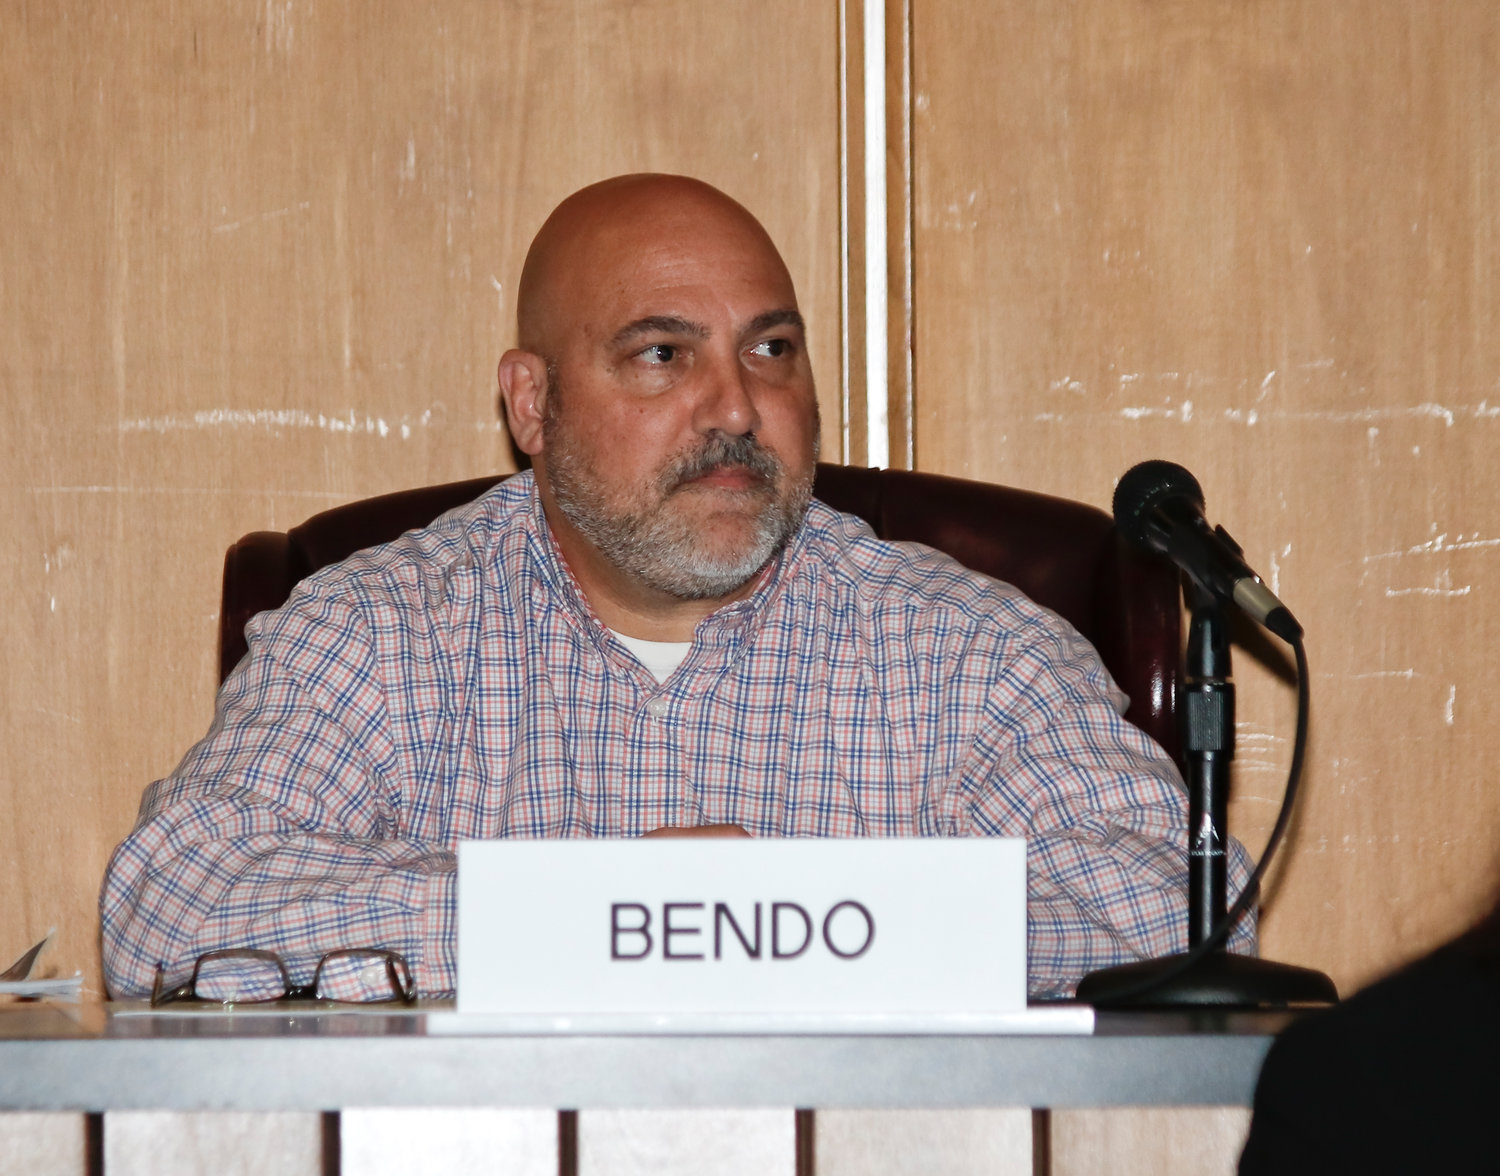 City Council Vice President John Bendo called for the special meeting on Oct. 11 to rescind the city's Sept. 23 response to a draft audit issued by State Comptroller Tom DiNapoli's office in late August.